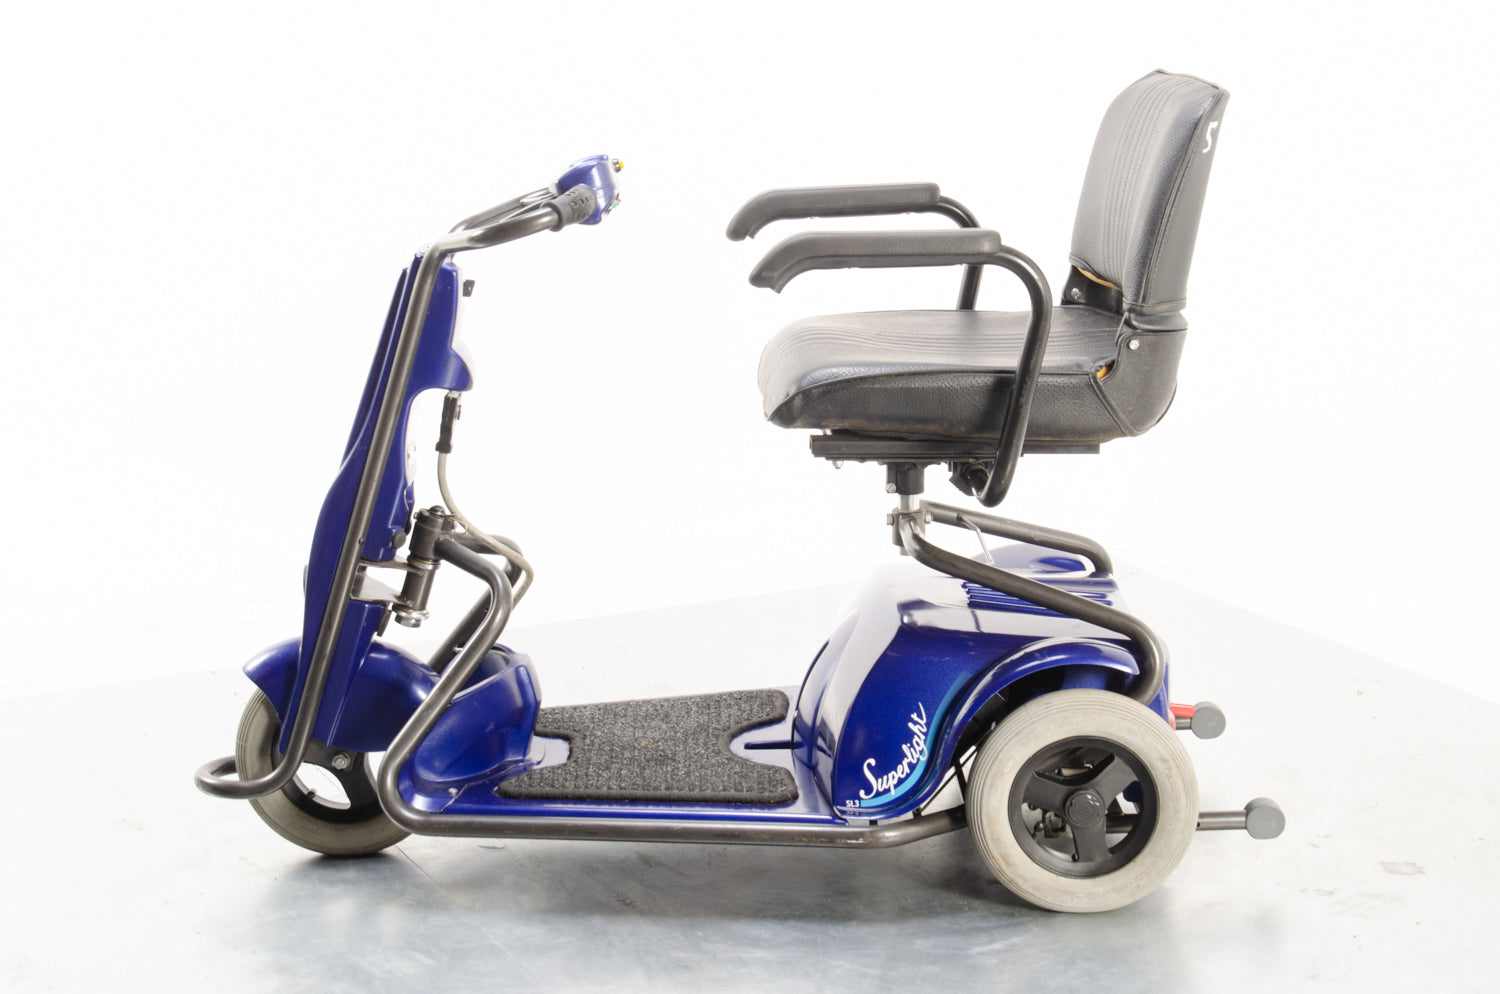 2006 TGA Superlight SL3 4mph Mobility Scooter Small Transportable Lightweight 3 Wheel